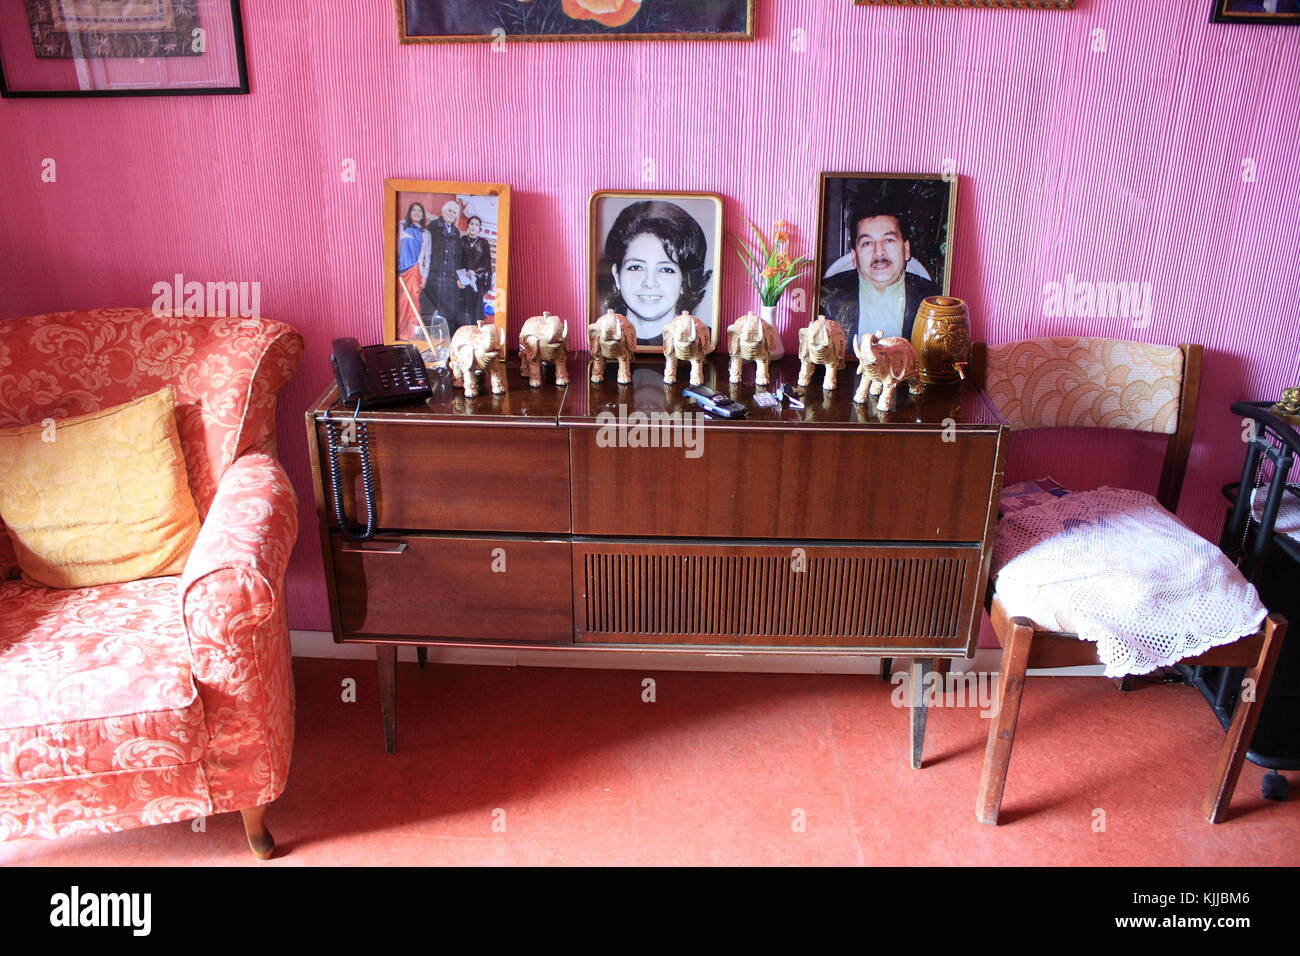 A Room Interior Of A Middle Class South American Family Pink Walls